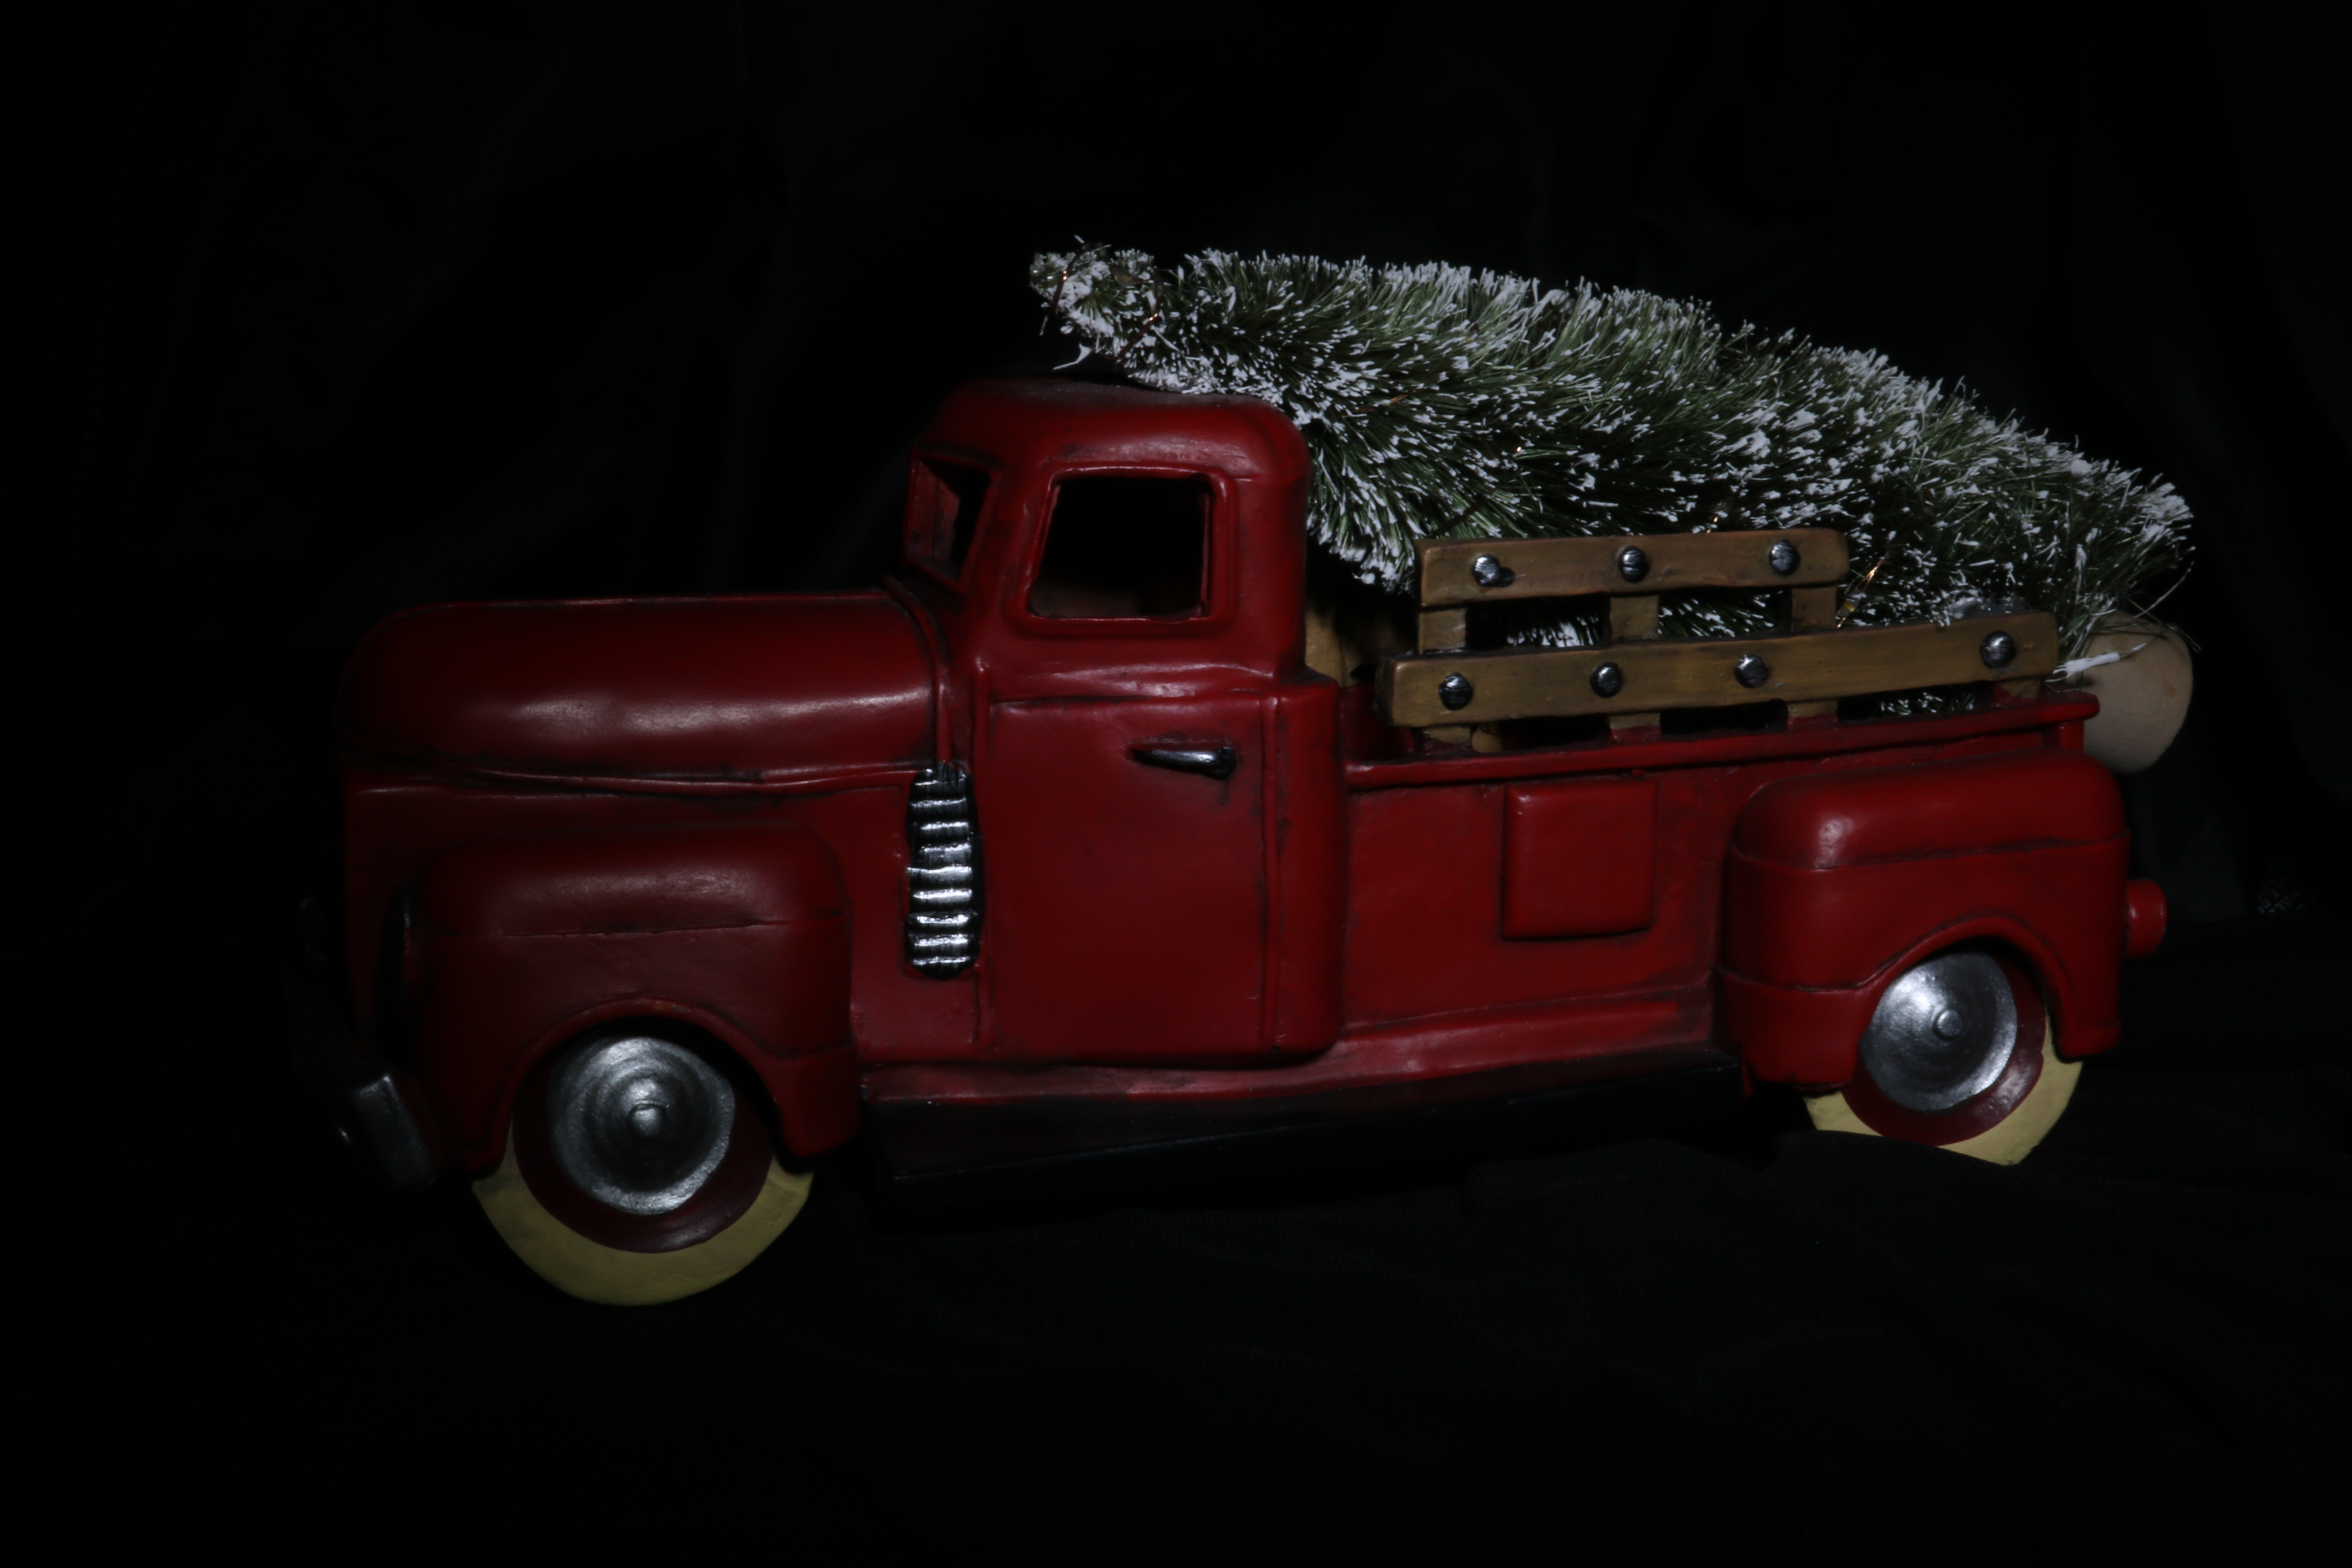 red truck with christmas tree in back